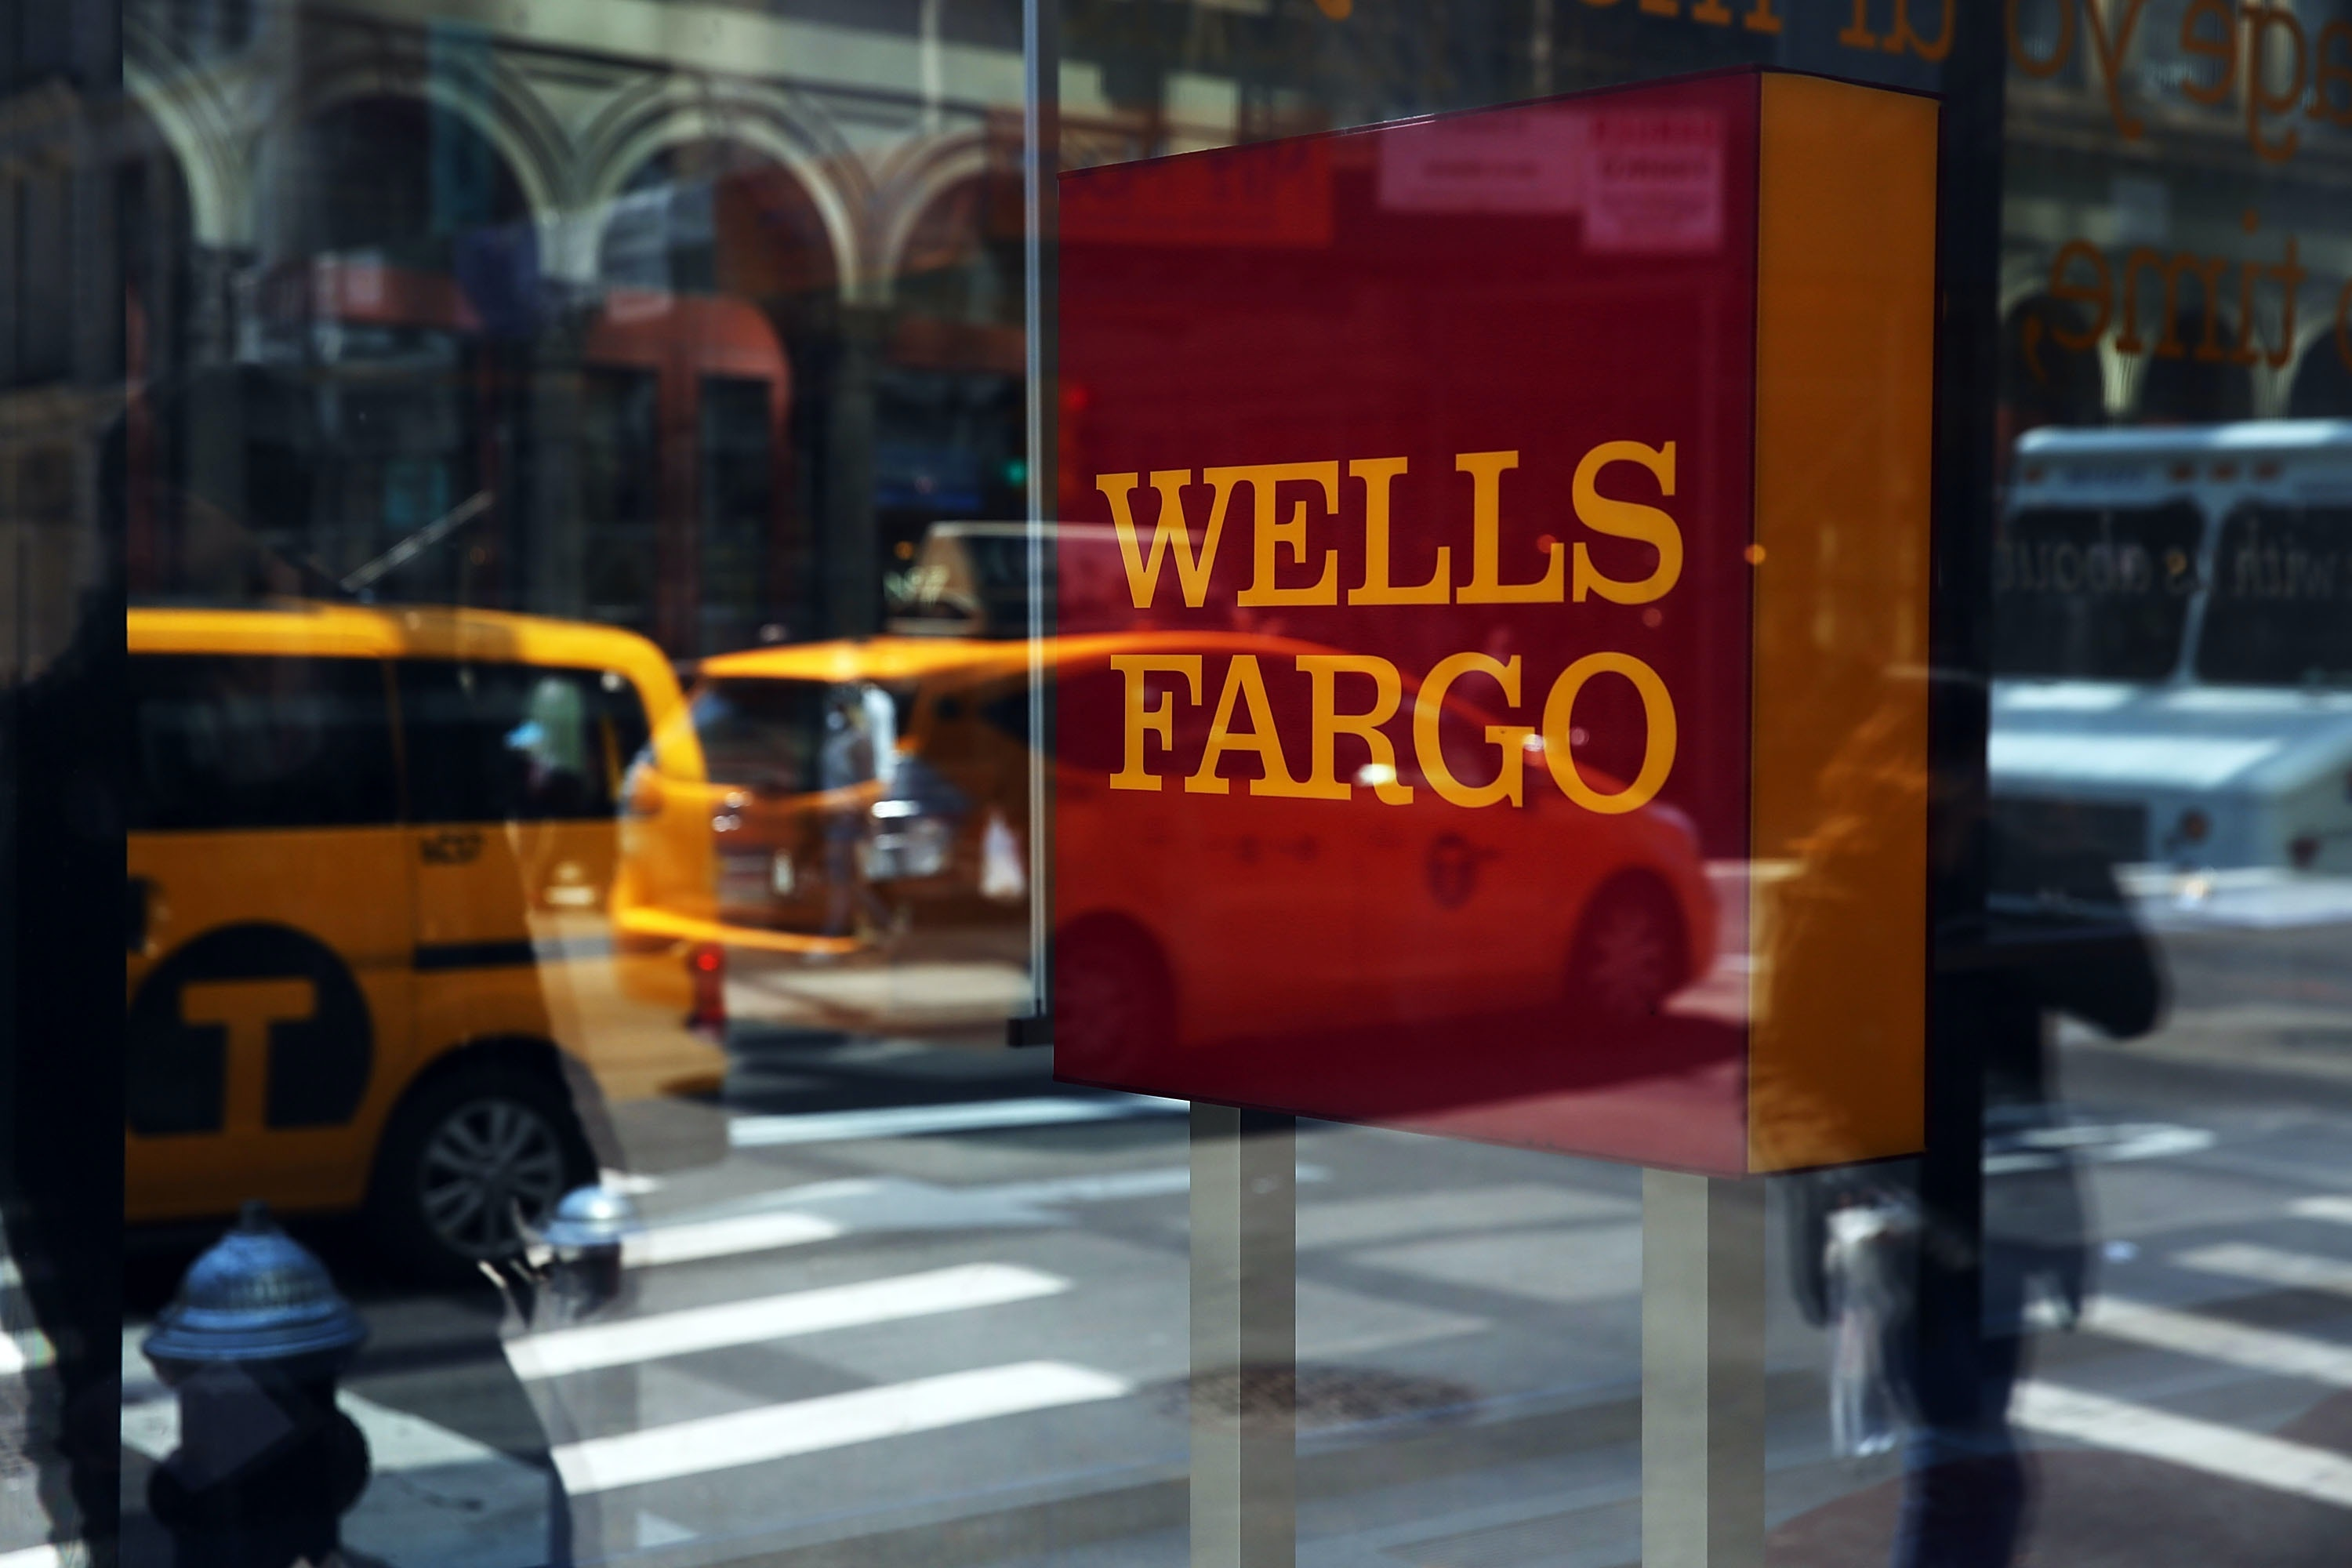 NEW YORK, NY - APRIL 15:  Pedestrians pass a Wells Fargo bank branch in lower Manhattan on April 15, 2016 in New York City. As global markets continue to be rattled by the fall in energy prices and the easing of the Chinese economy, JPMorgan Chase, Bank of America and Wells Fargo announced on Thursday that their profits fell in the first quarter. At JPMorgan revenue fell 13 percent from a year earlier.  (Photo by Spencer Platt/Getty Images)